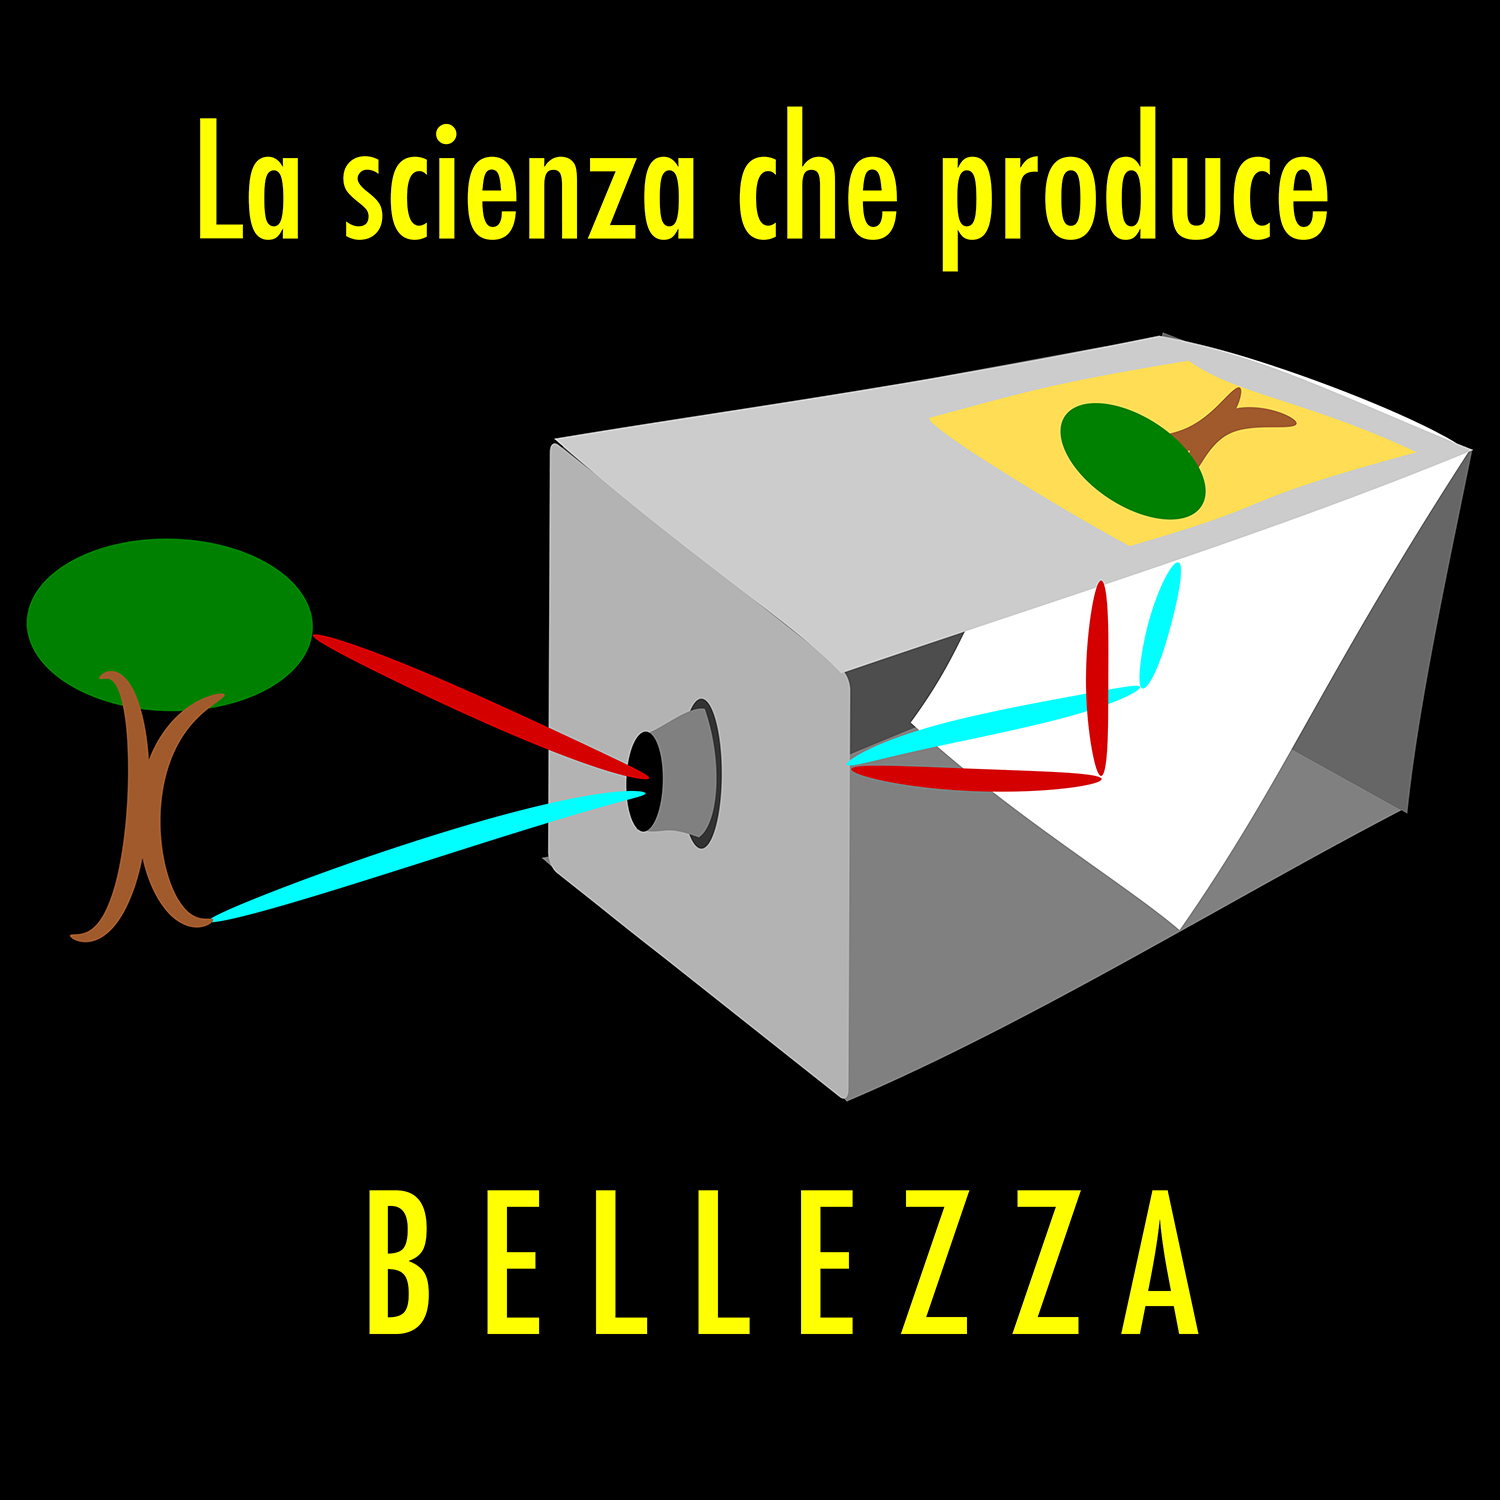 La scienza che produce bellezza